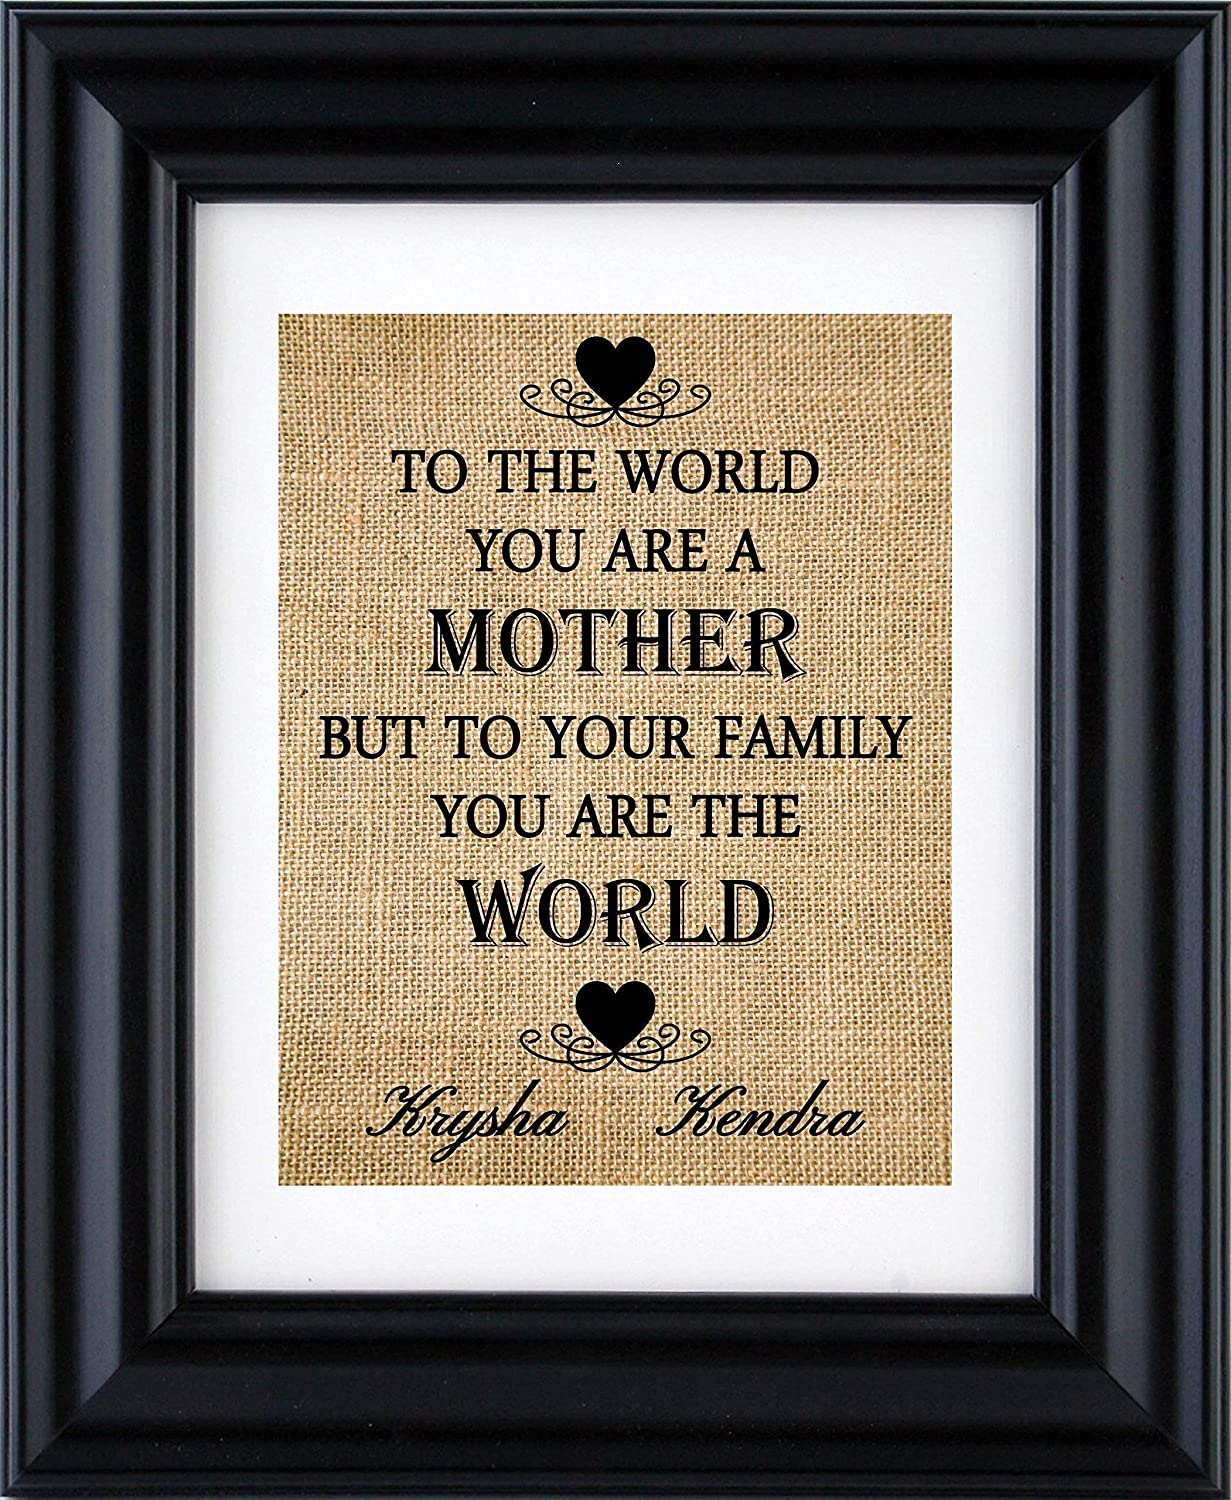 Handmade banner Beads Hessian flowers To the world you are a mother but to our family you are the world Mother\u2019s Day gift